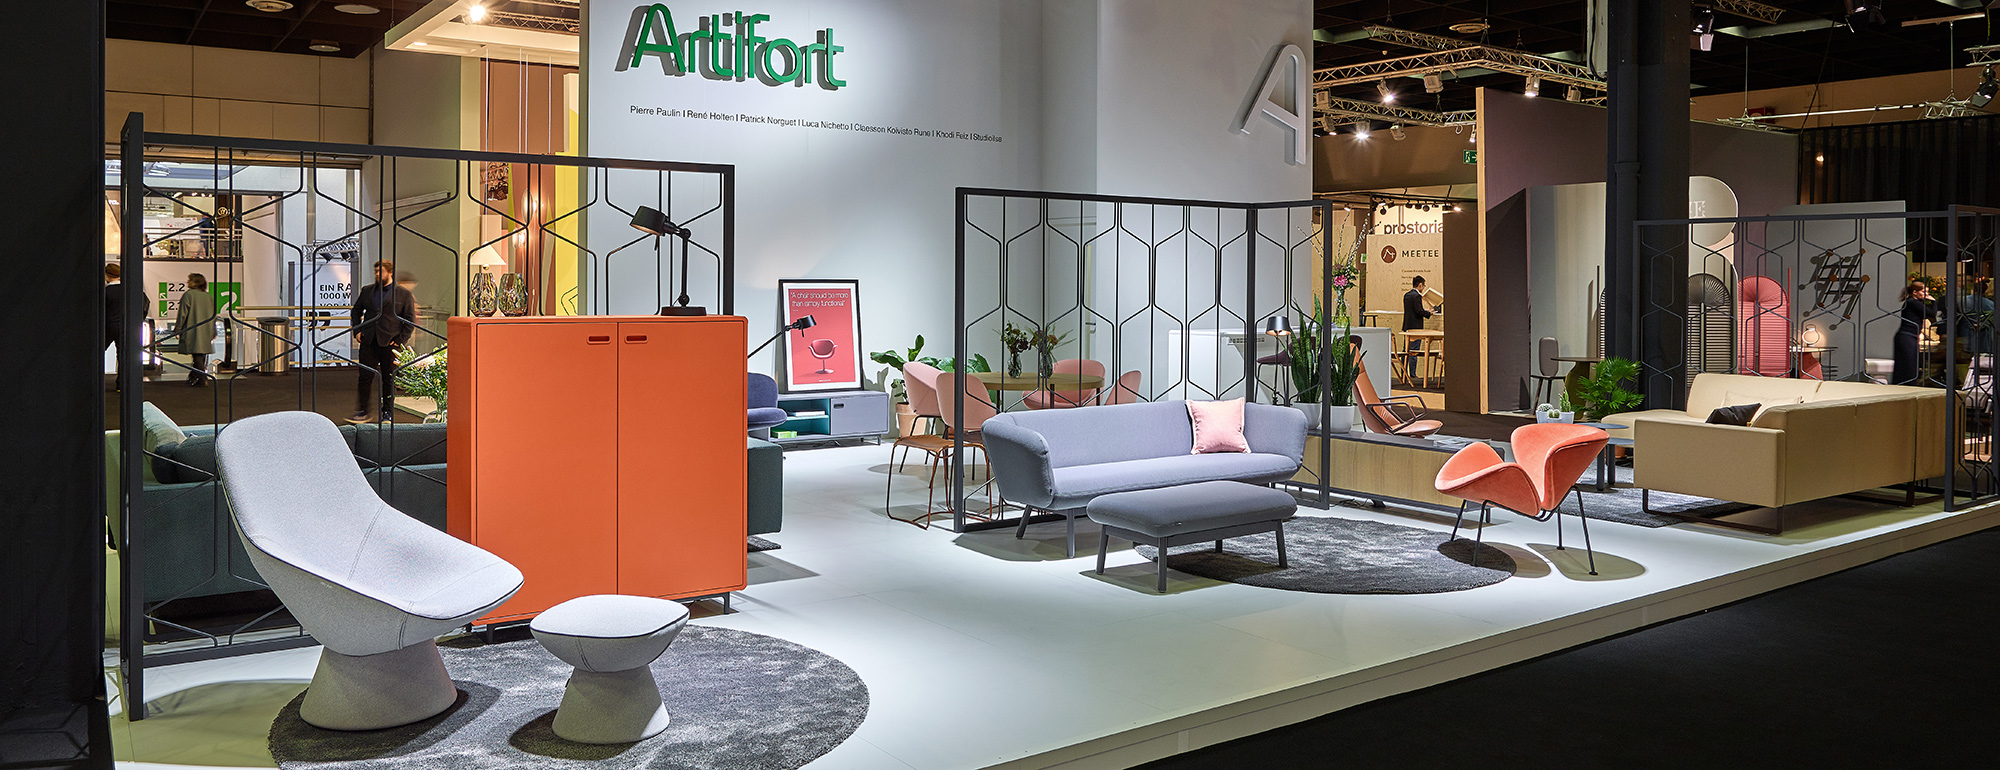 imm cologne 2018 artifort stand. Black Bedroom Furniture Sets. Home Design Ideas